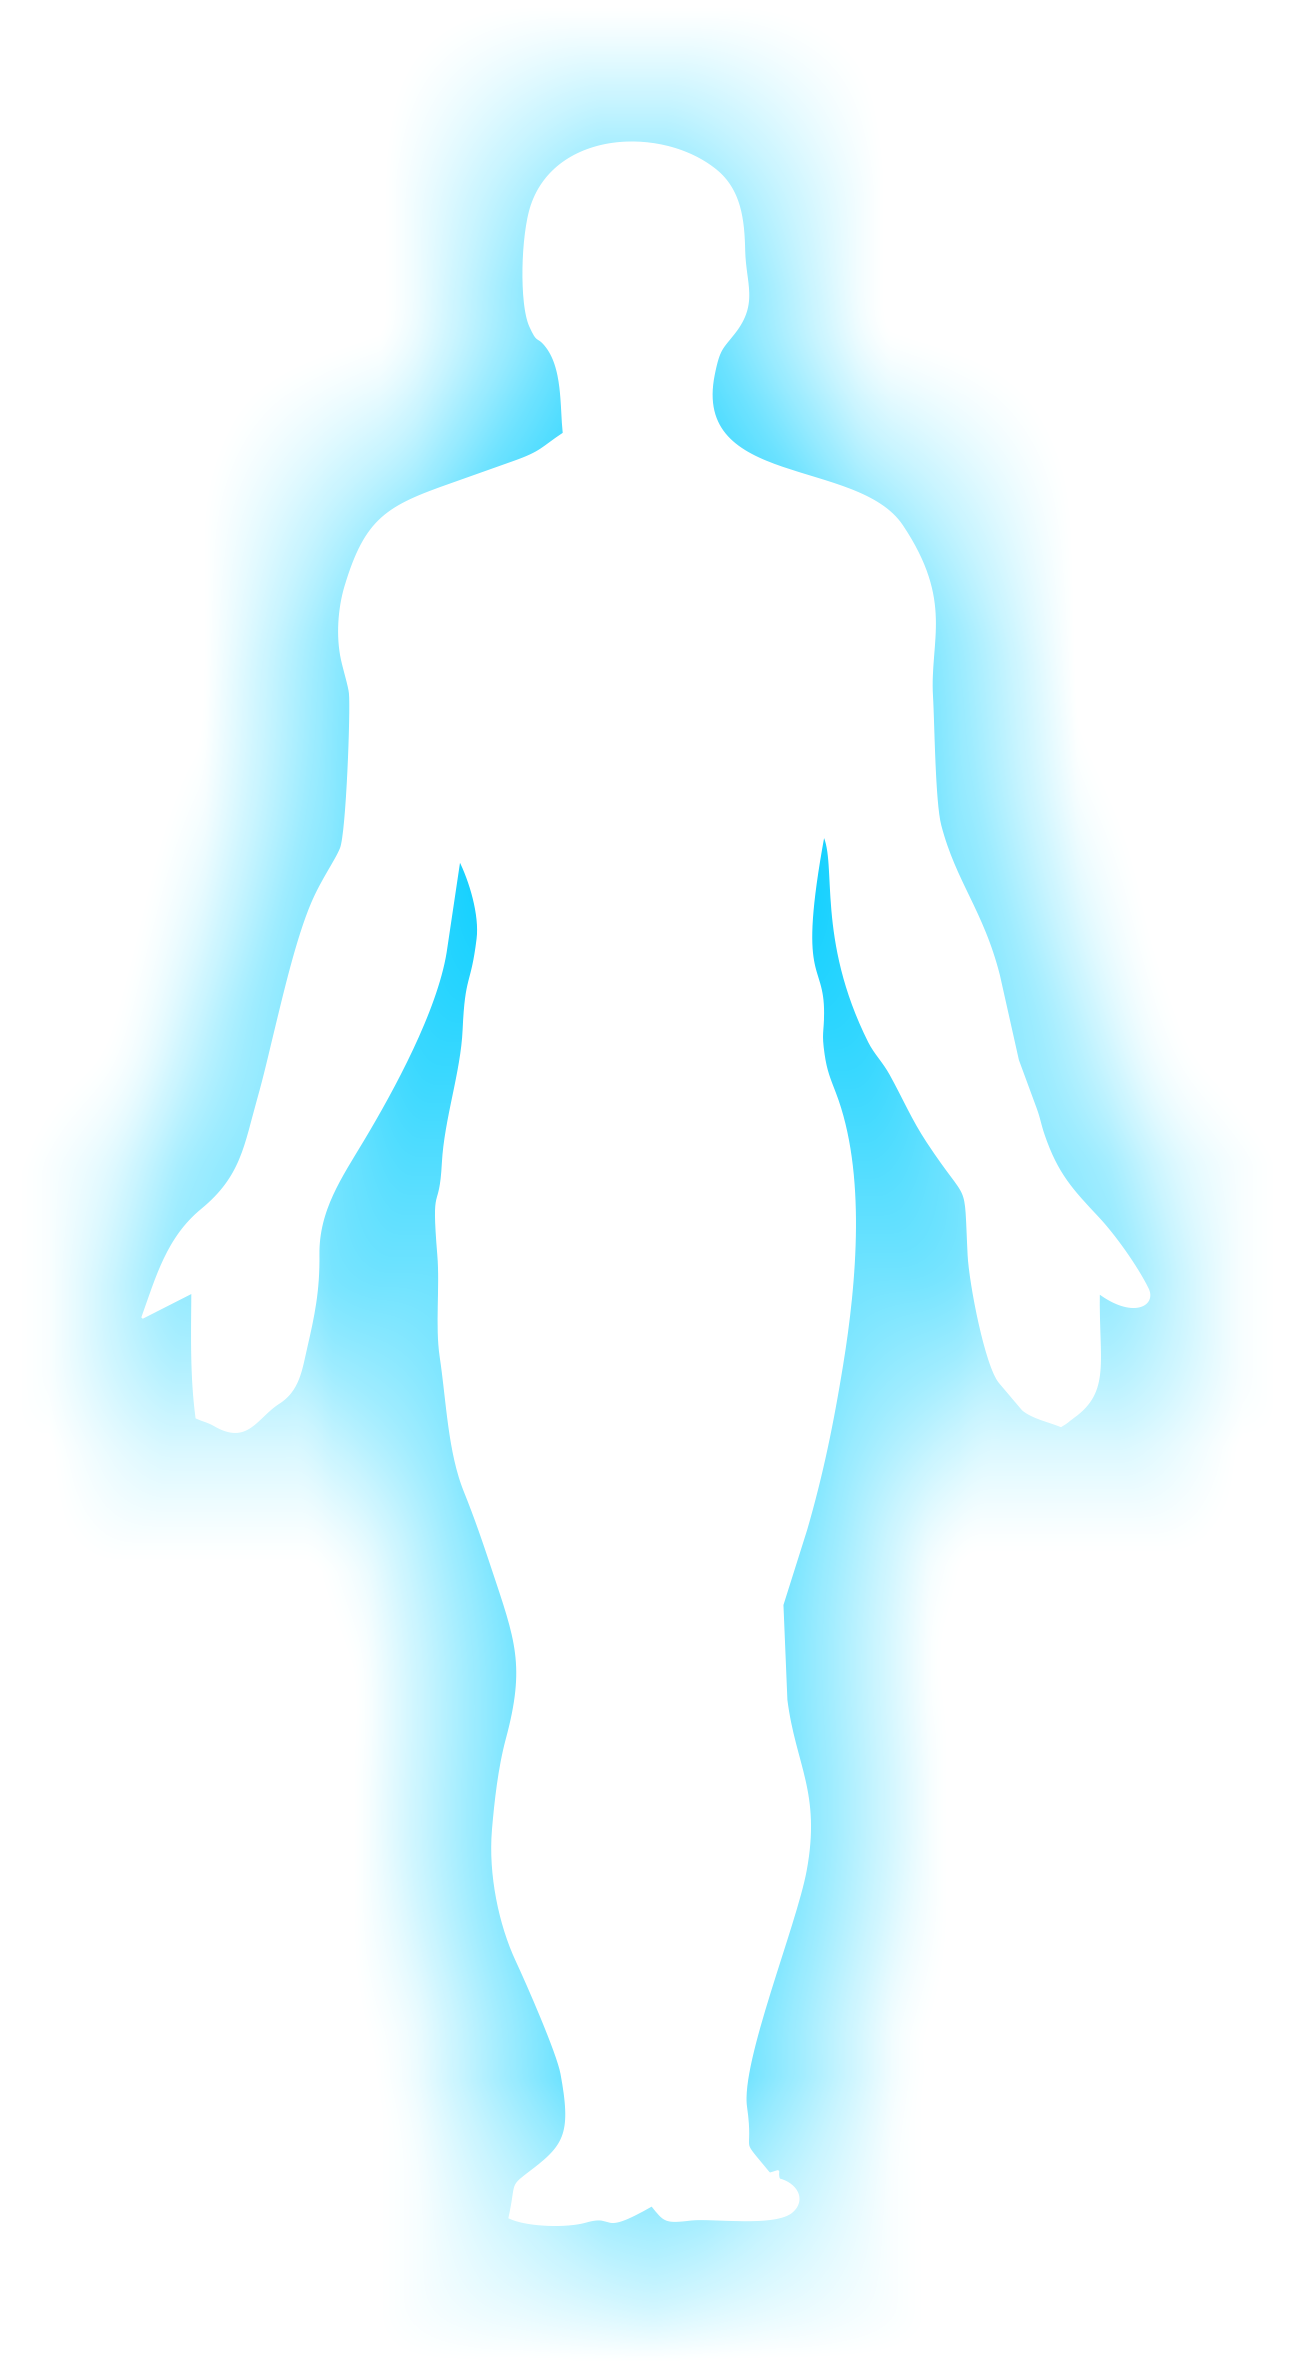 human body collection png free human body collection png transparent images 92282 pngio human body collection png transparent